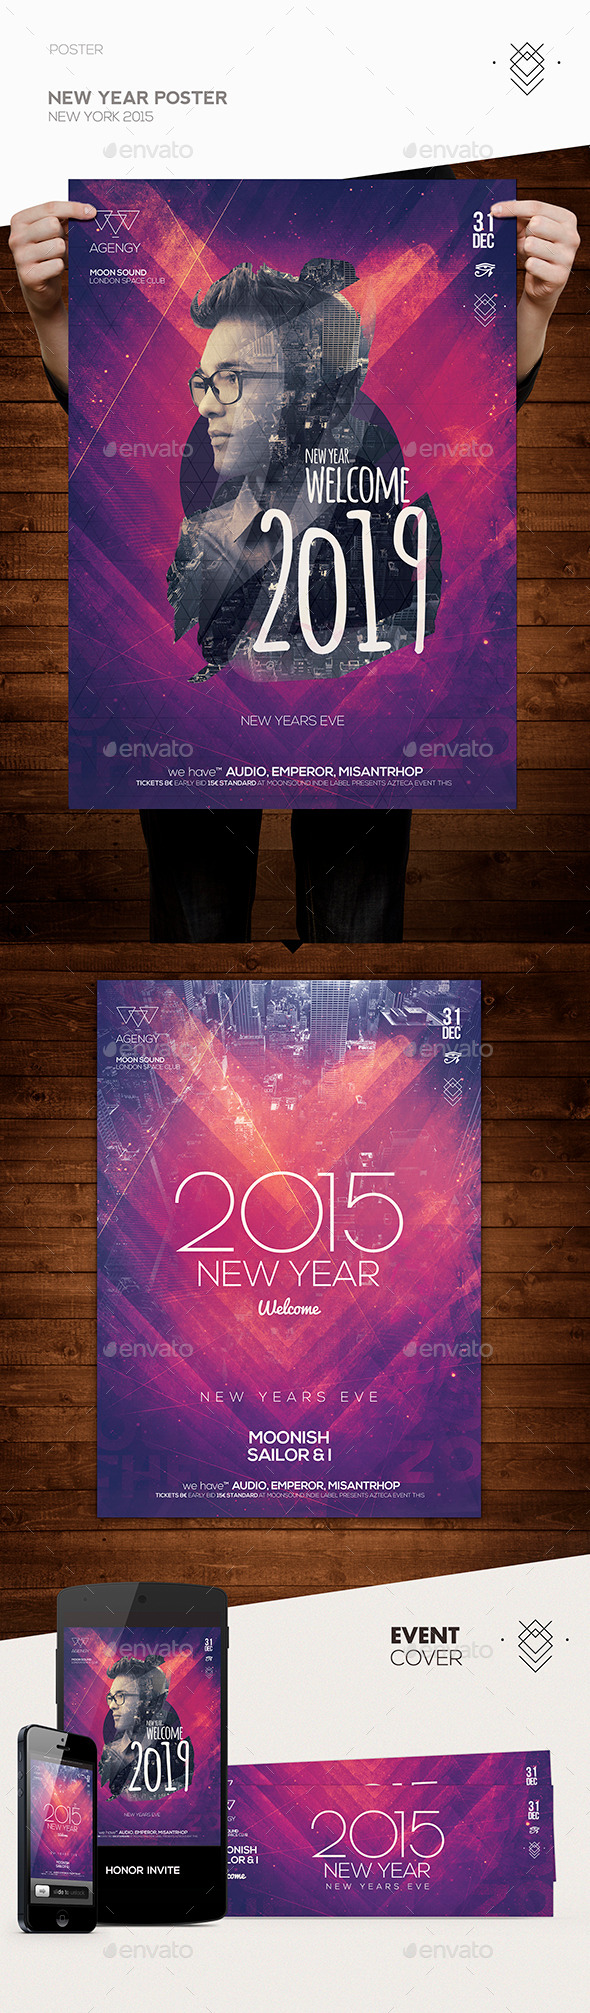 GraphicRiver New Year Poster Flyer 9834160